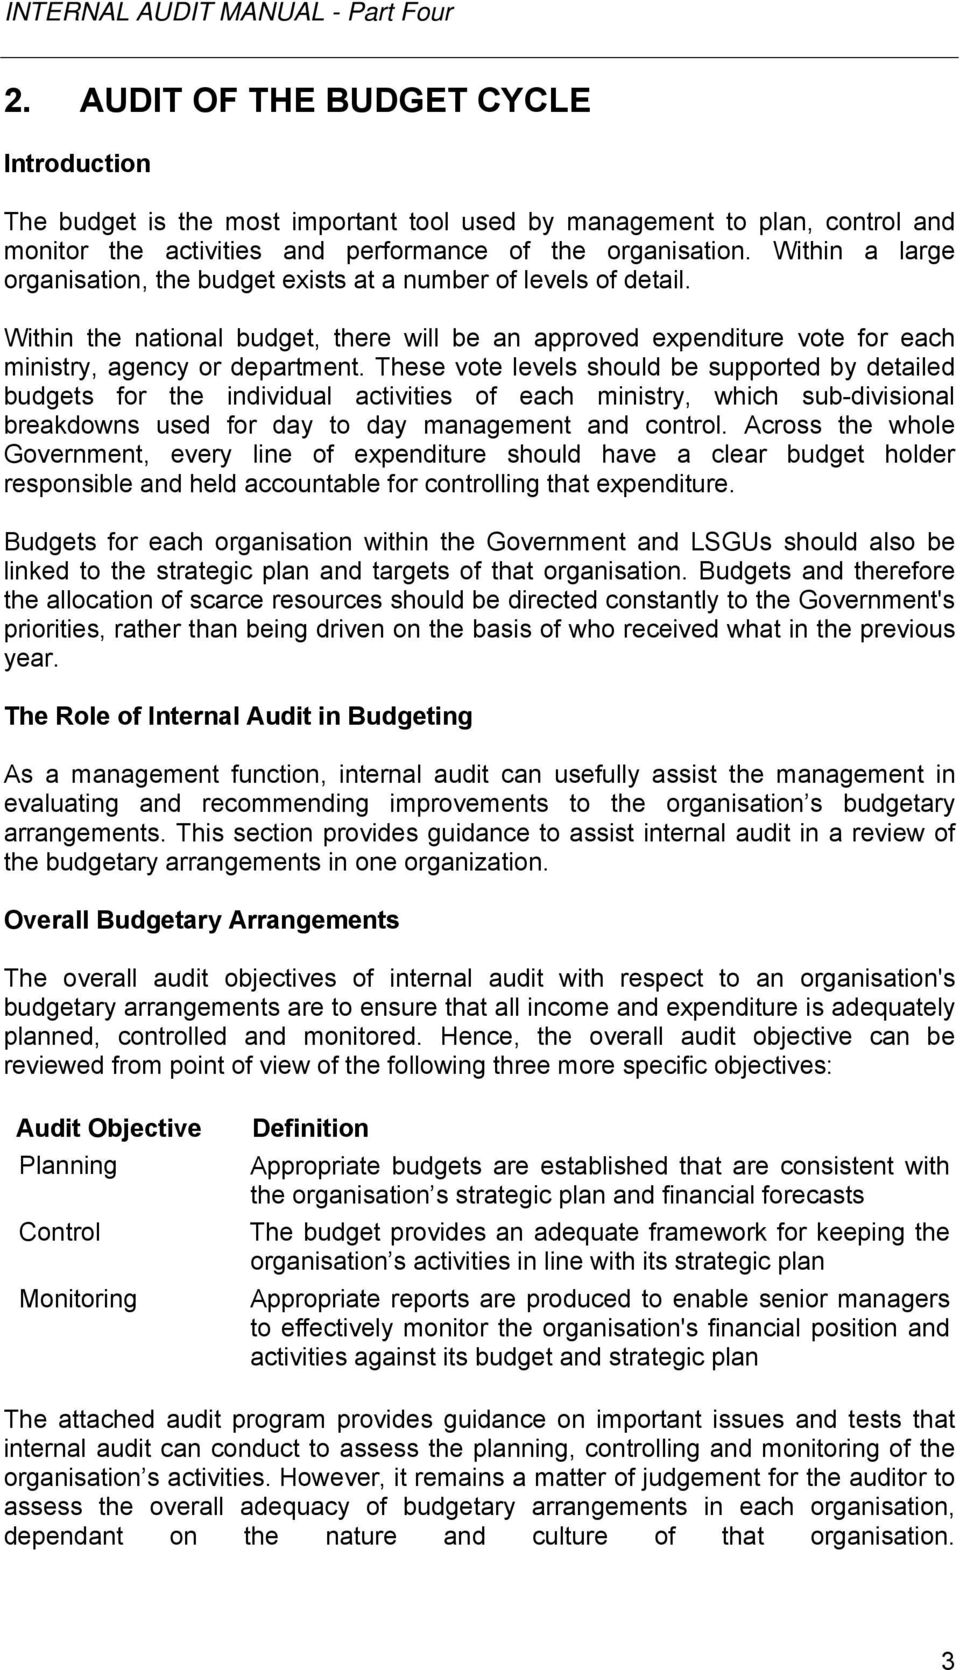 Within a large organisation, the budget exists at a number of levels of  detail.